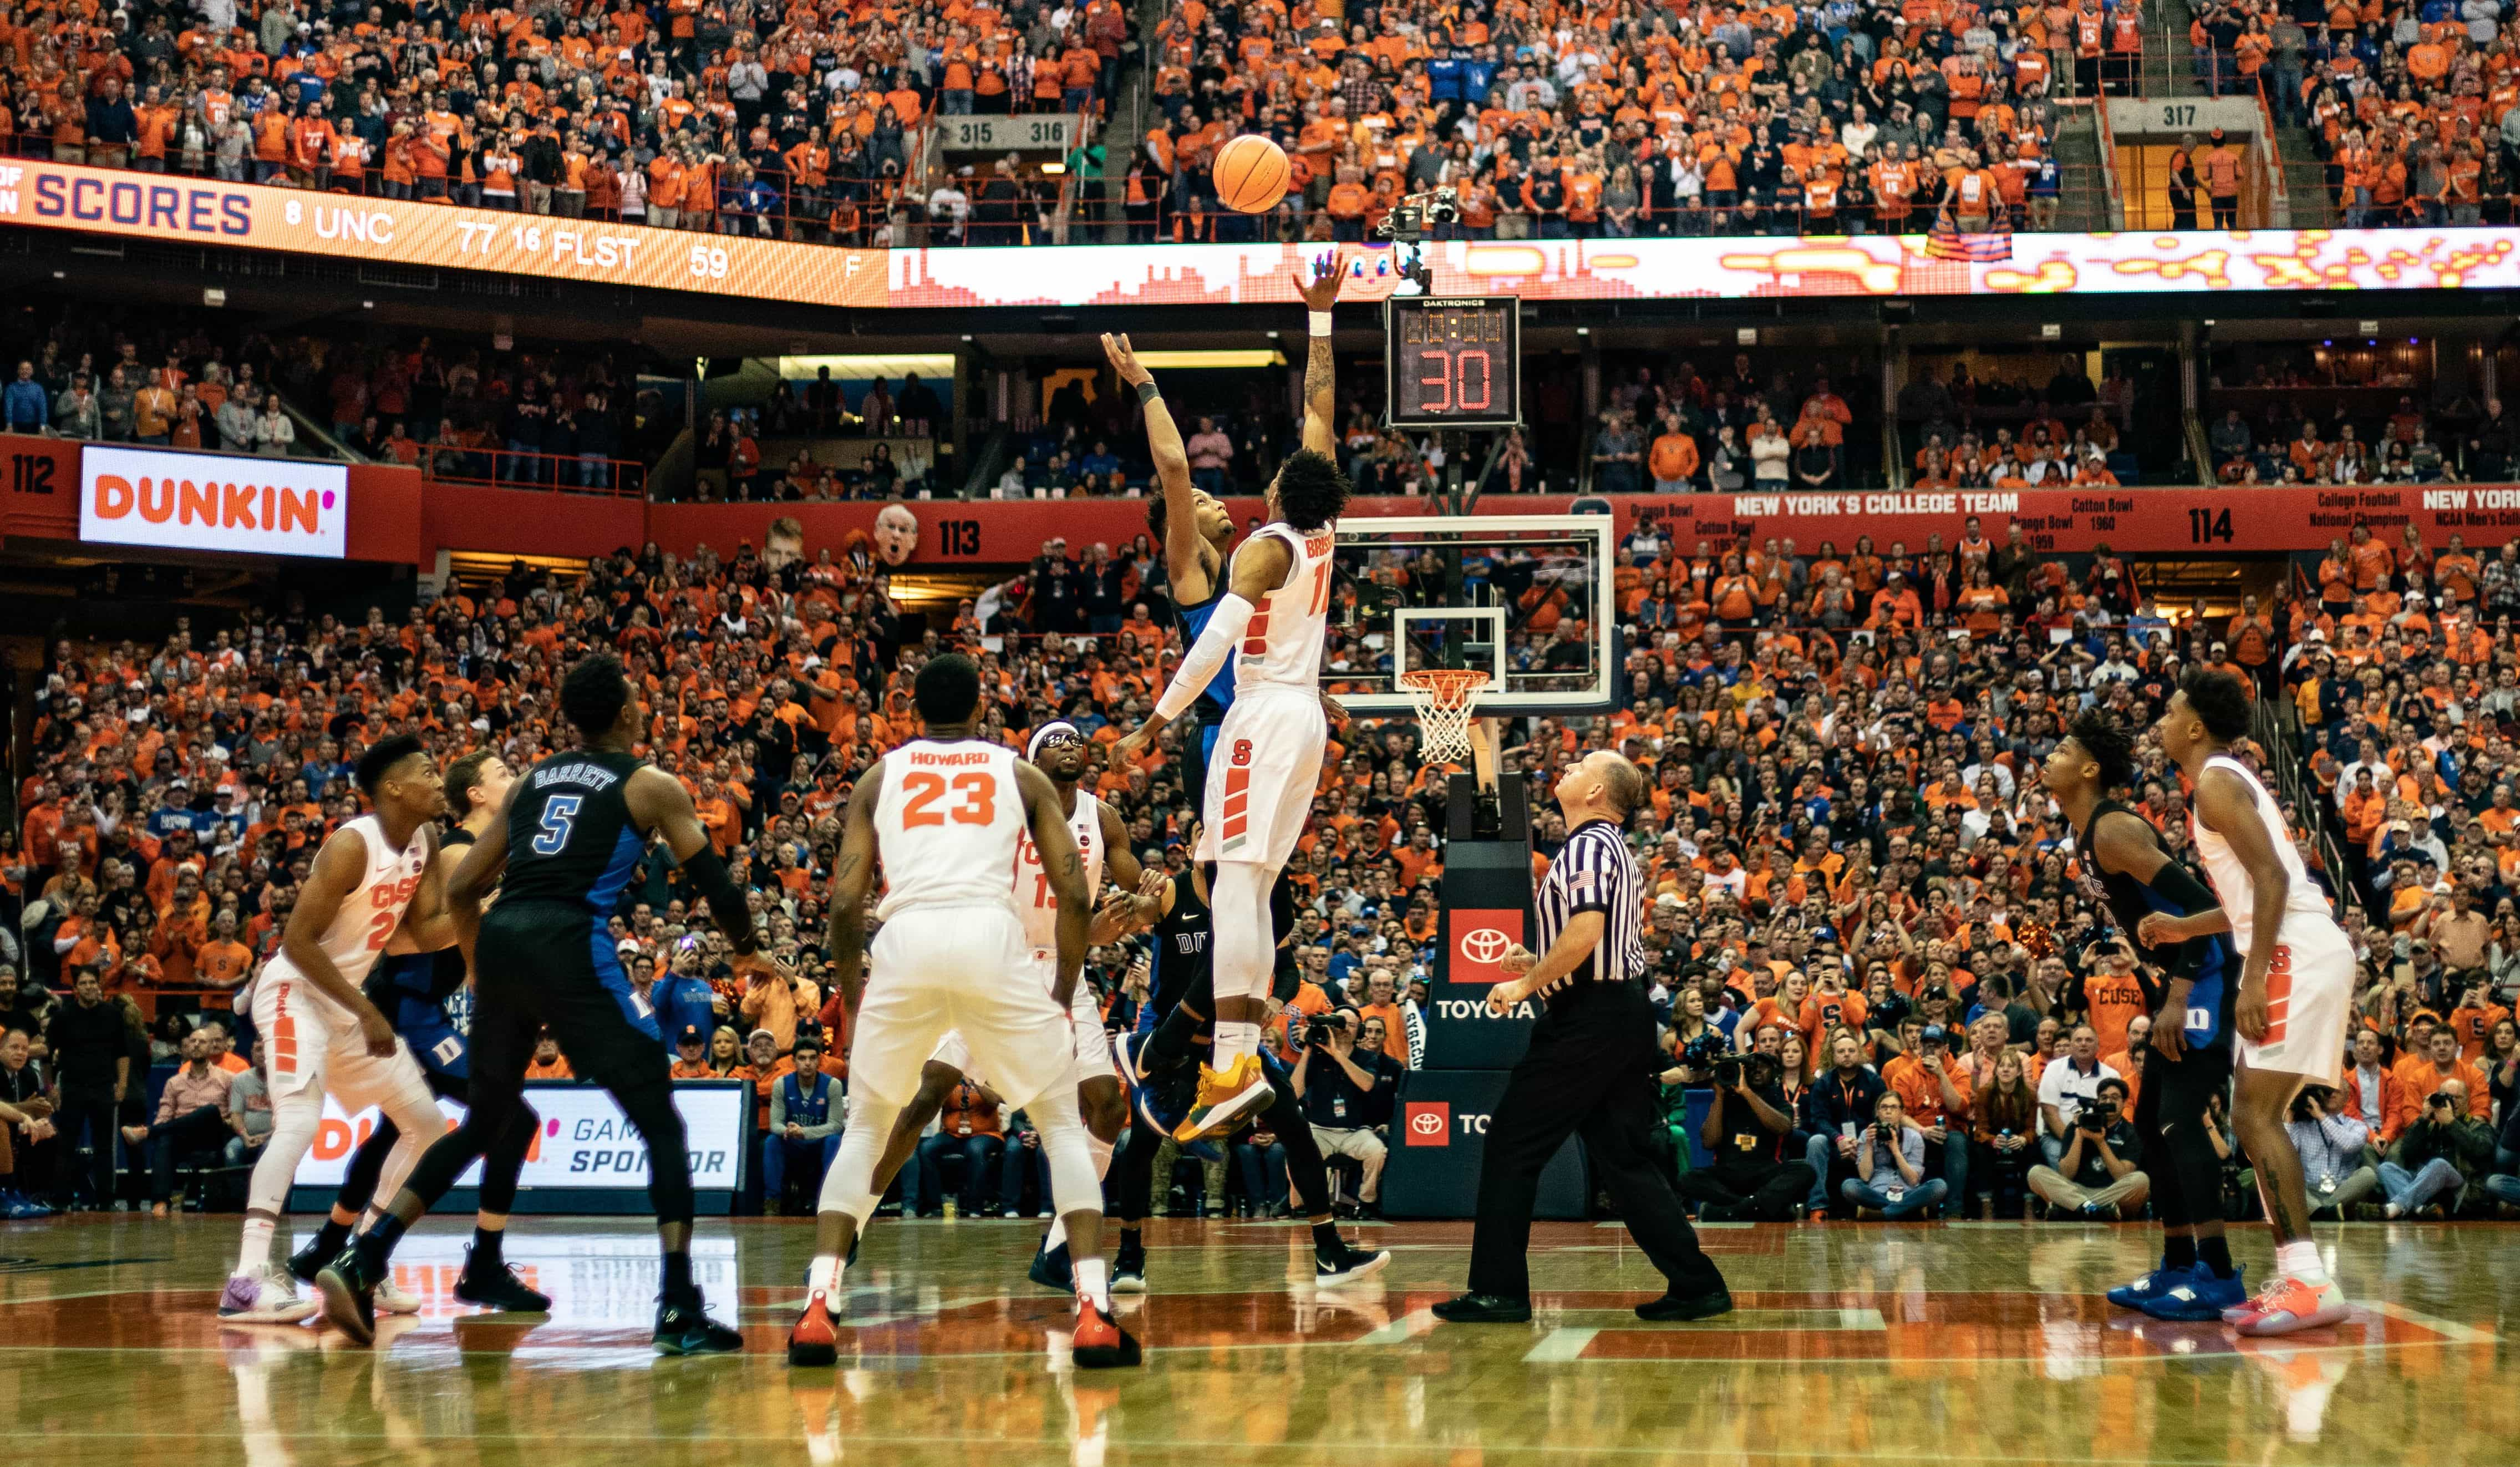 Syracuse Falls Short Of Duke Sweep In Front Of Record Crowd